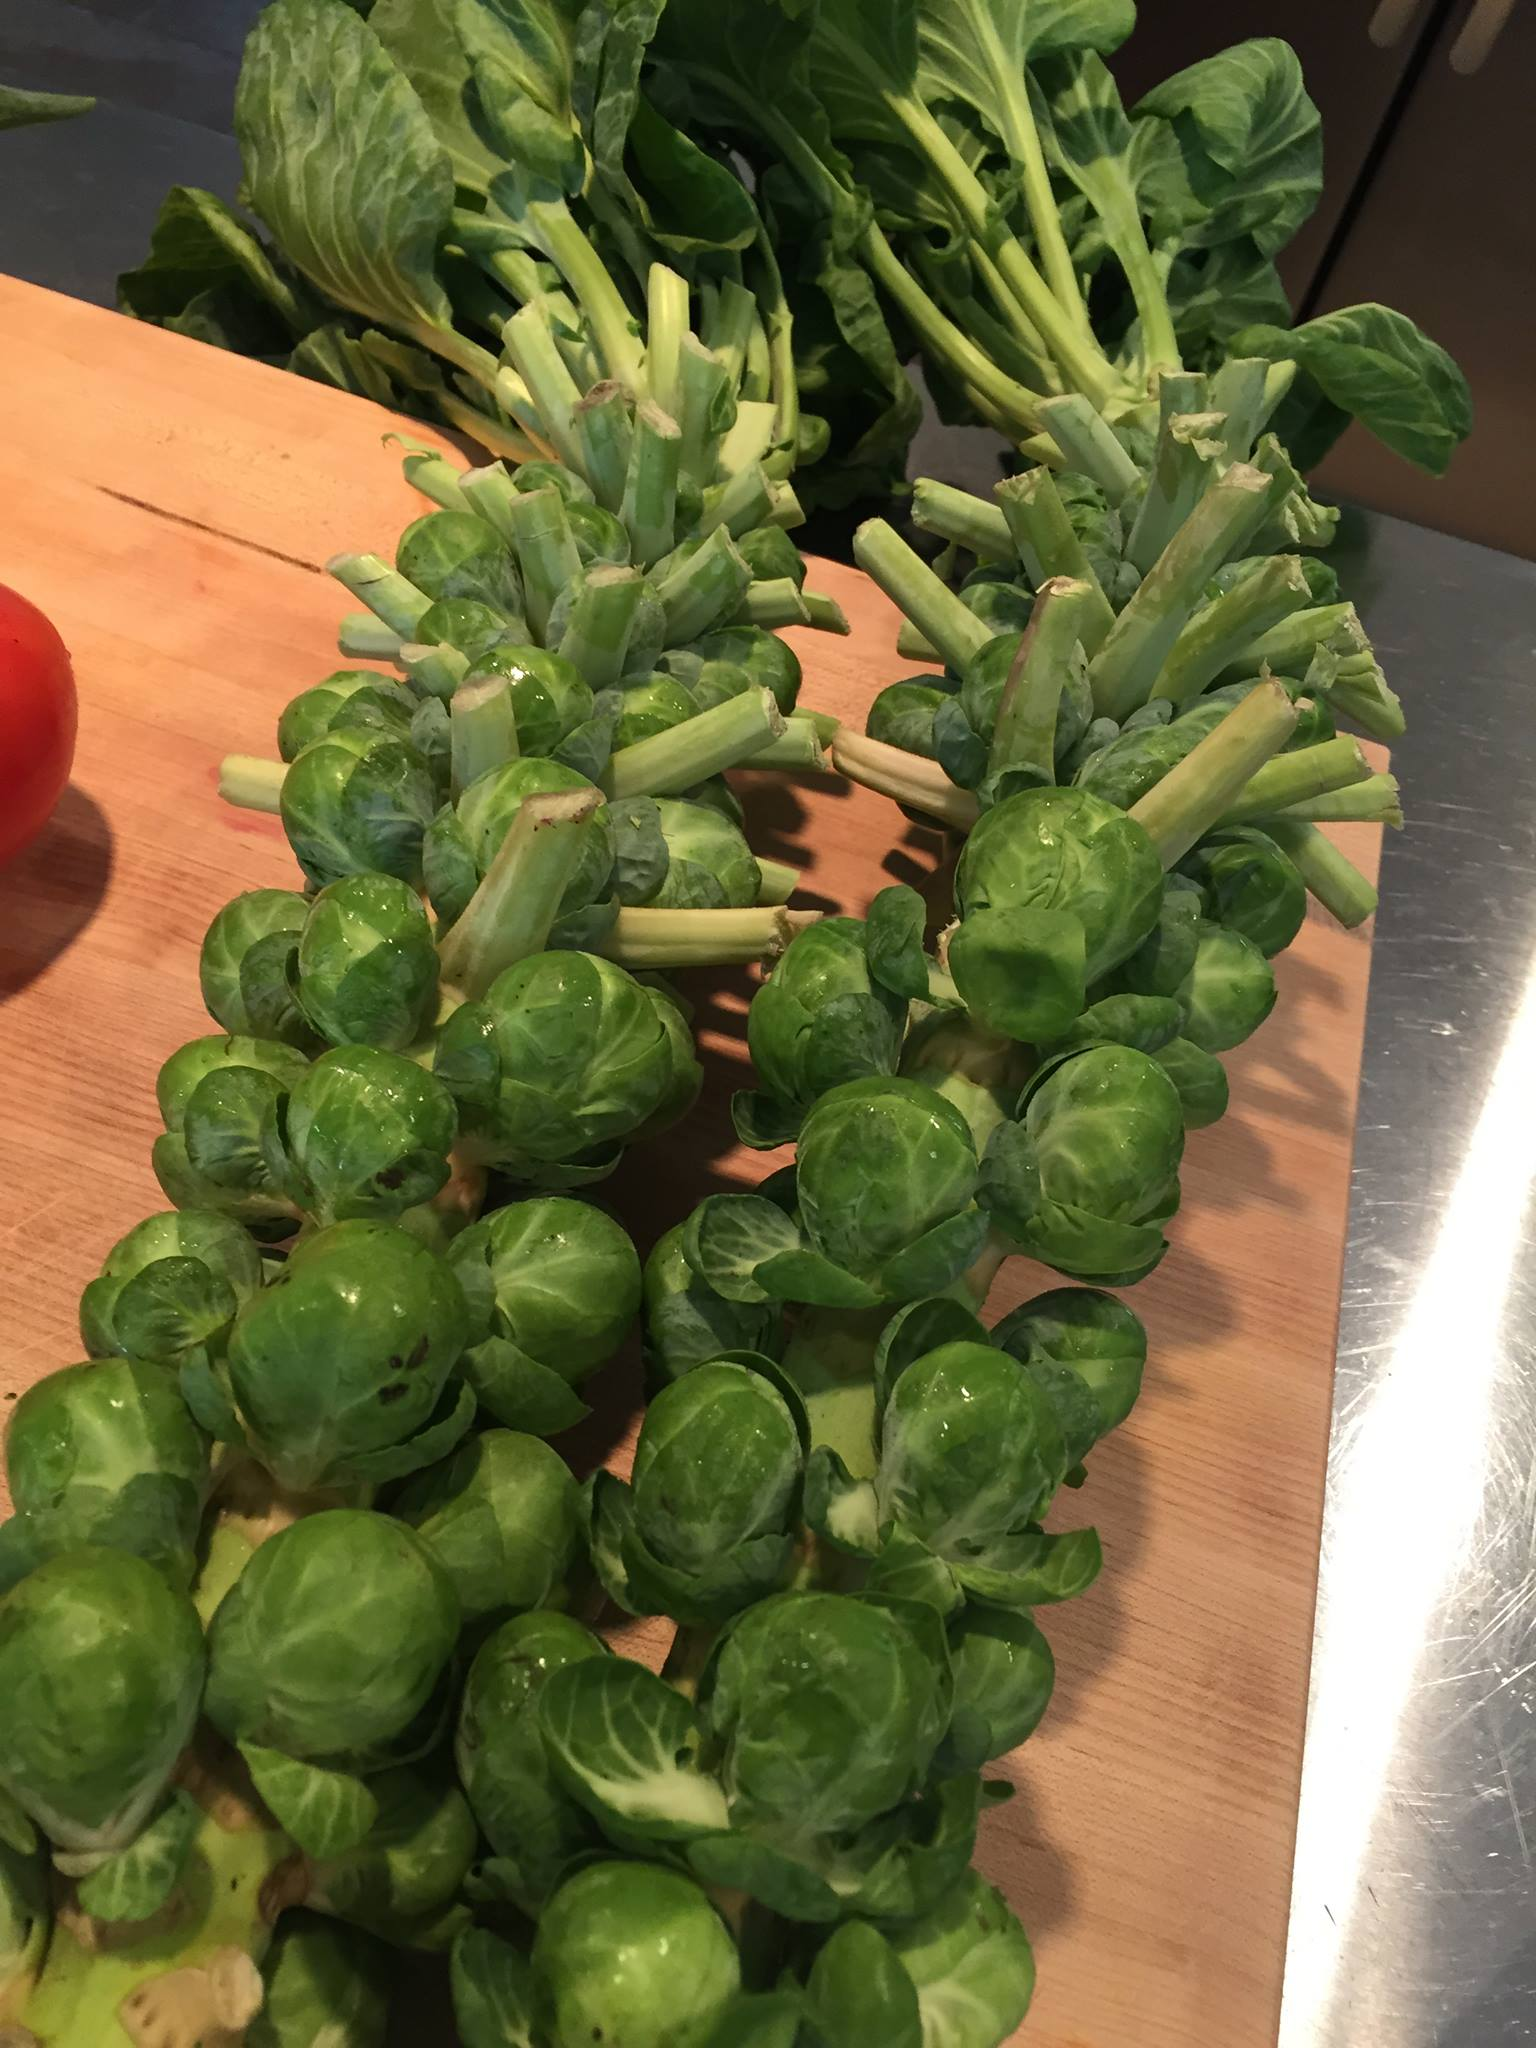 Stalks of Brussel Sprouts